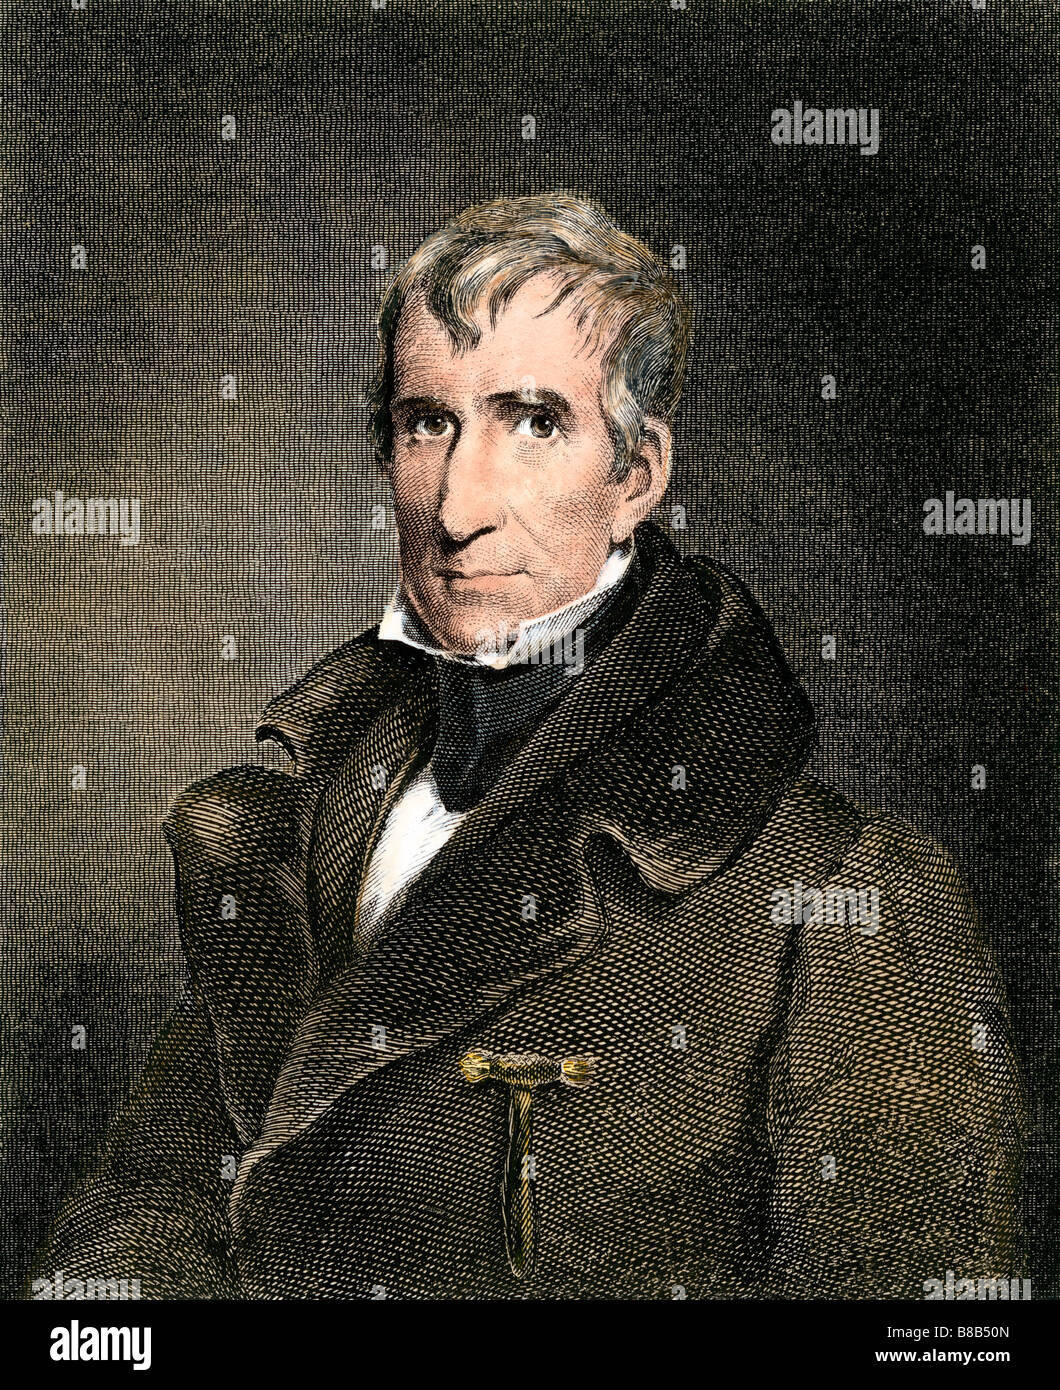 William Henry Harrison President of the US 1841. Hand-colored engraving - Stock Image